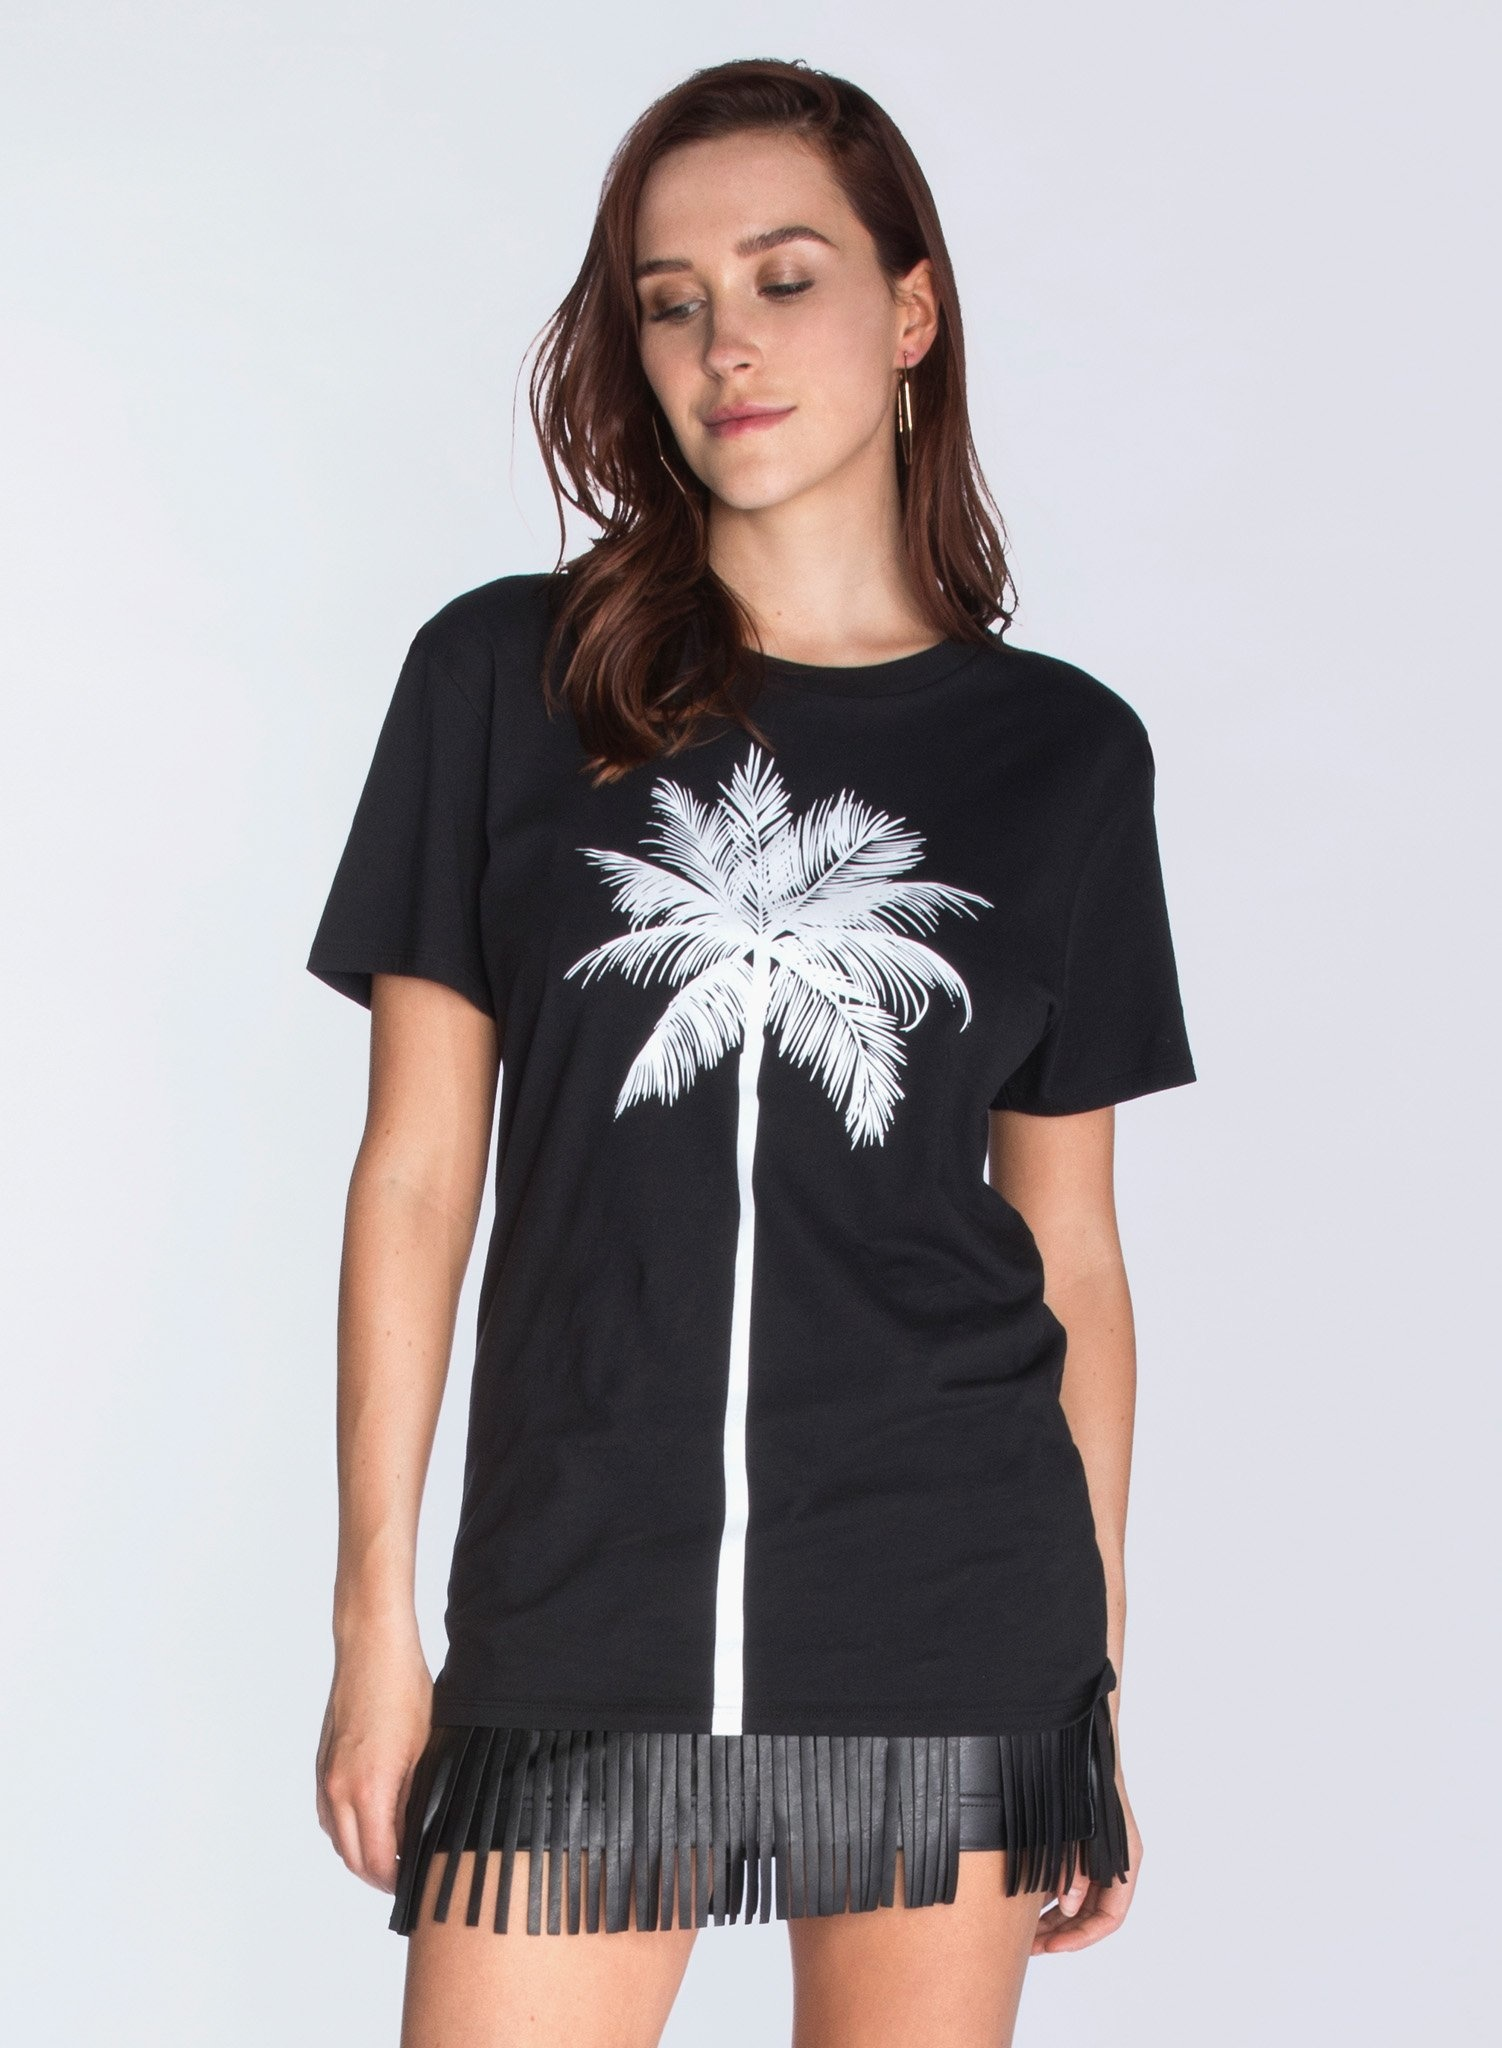 CHRLDR THE PALM TREE — Boyfriend T-Shirt